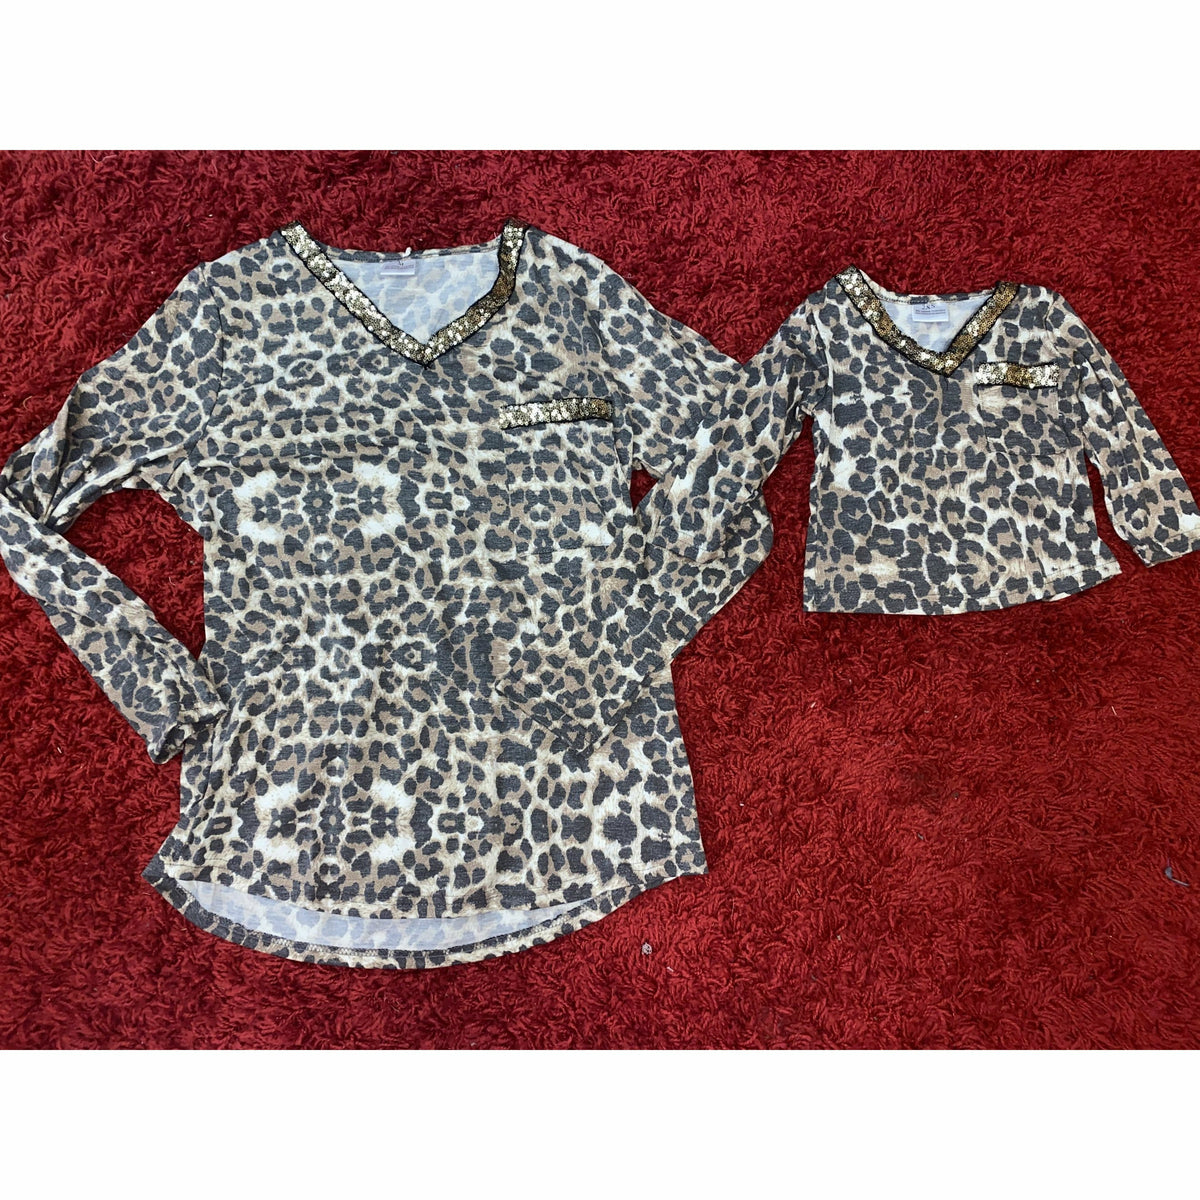 Leopard Sequin Cheetah top